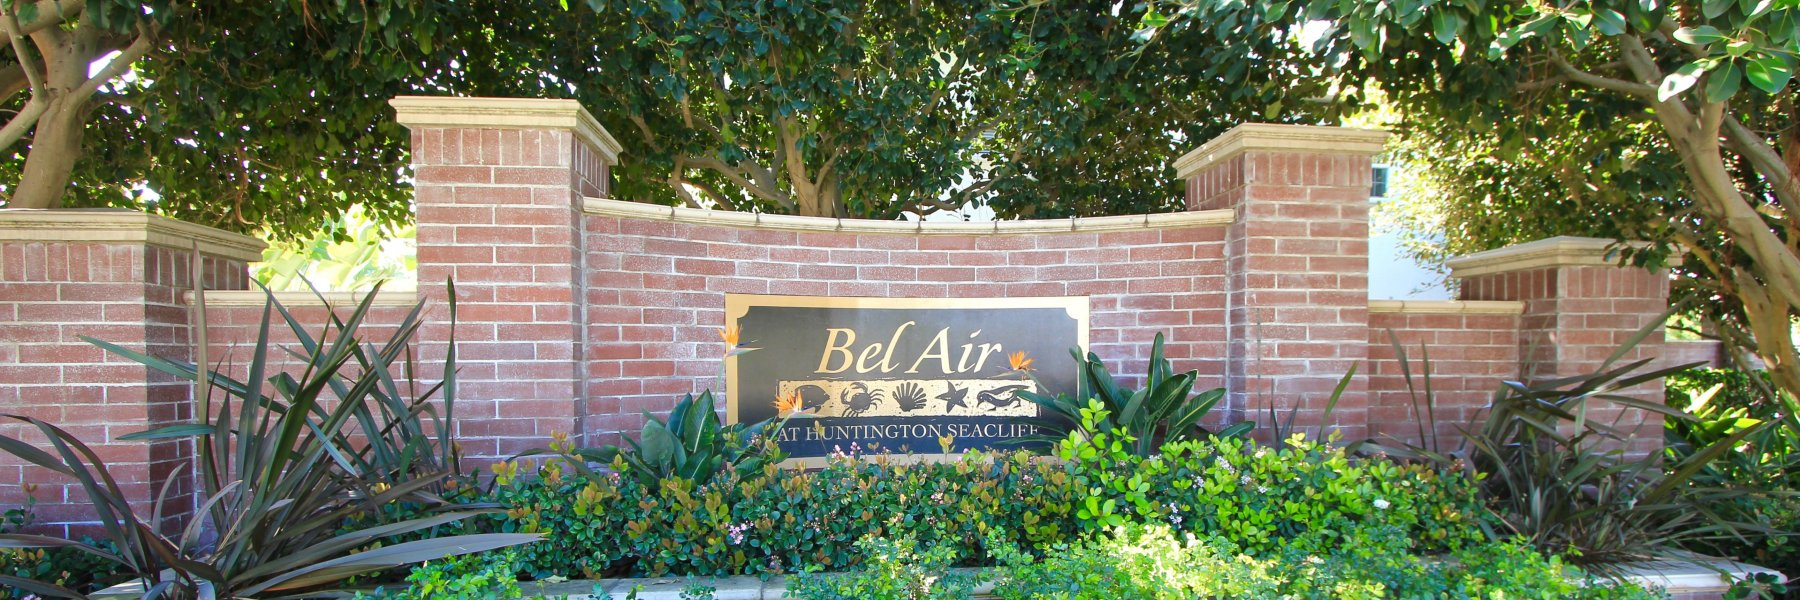 Bel Air is a community of homes in Huntington Beach California